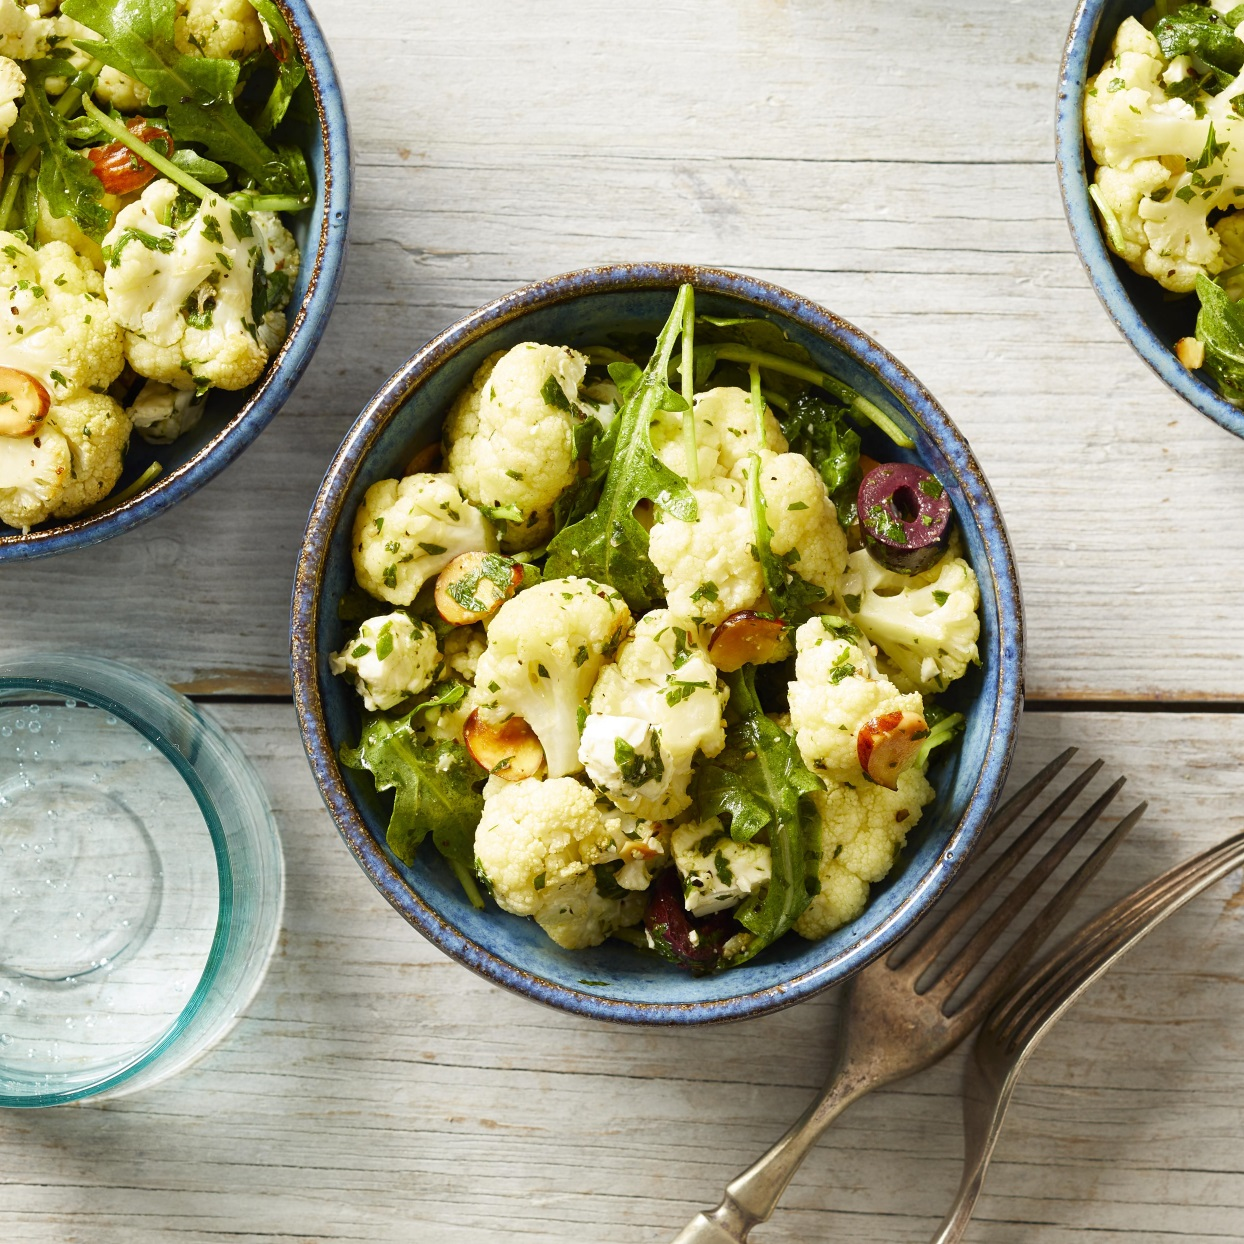 Roasted Cauliflower Salad with Almonds, Olives & Feta Allrecipes Trusted Brands